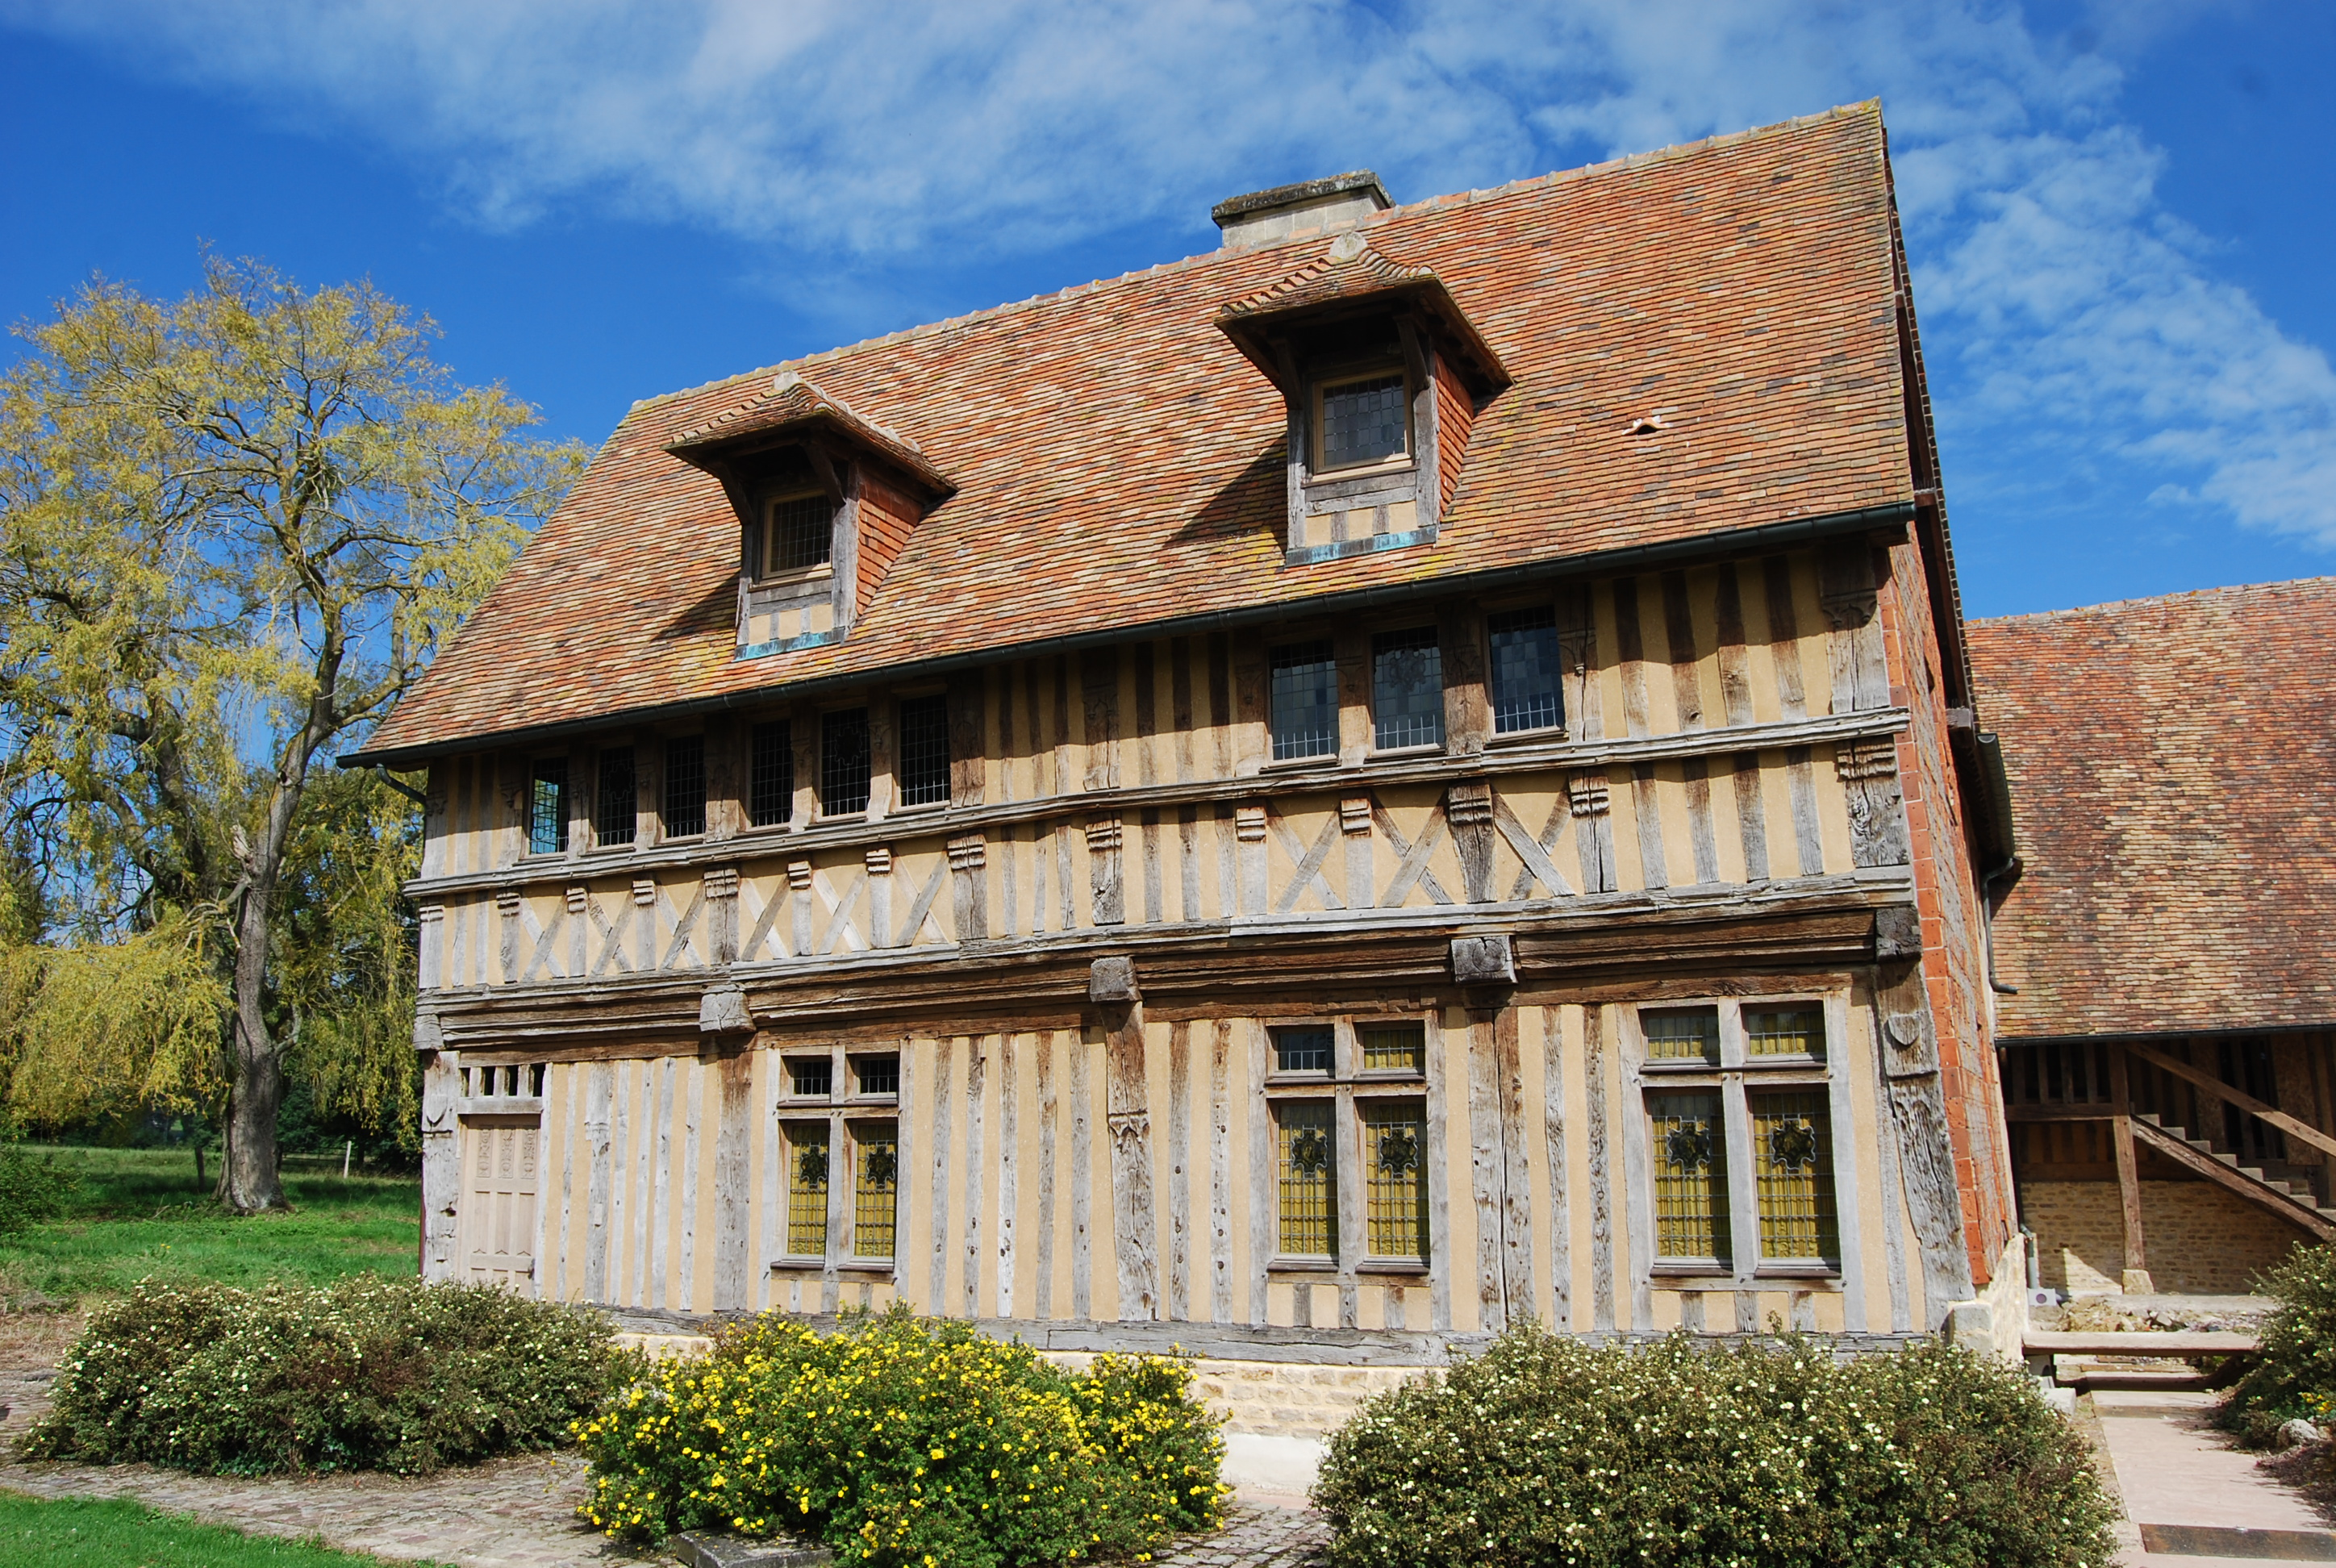 manoir_à_encorbellement